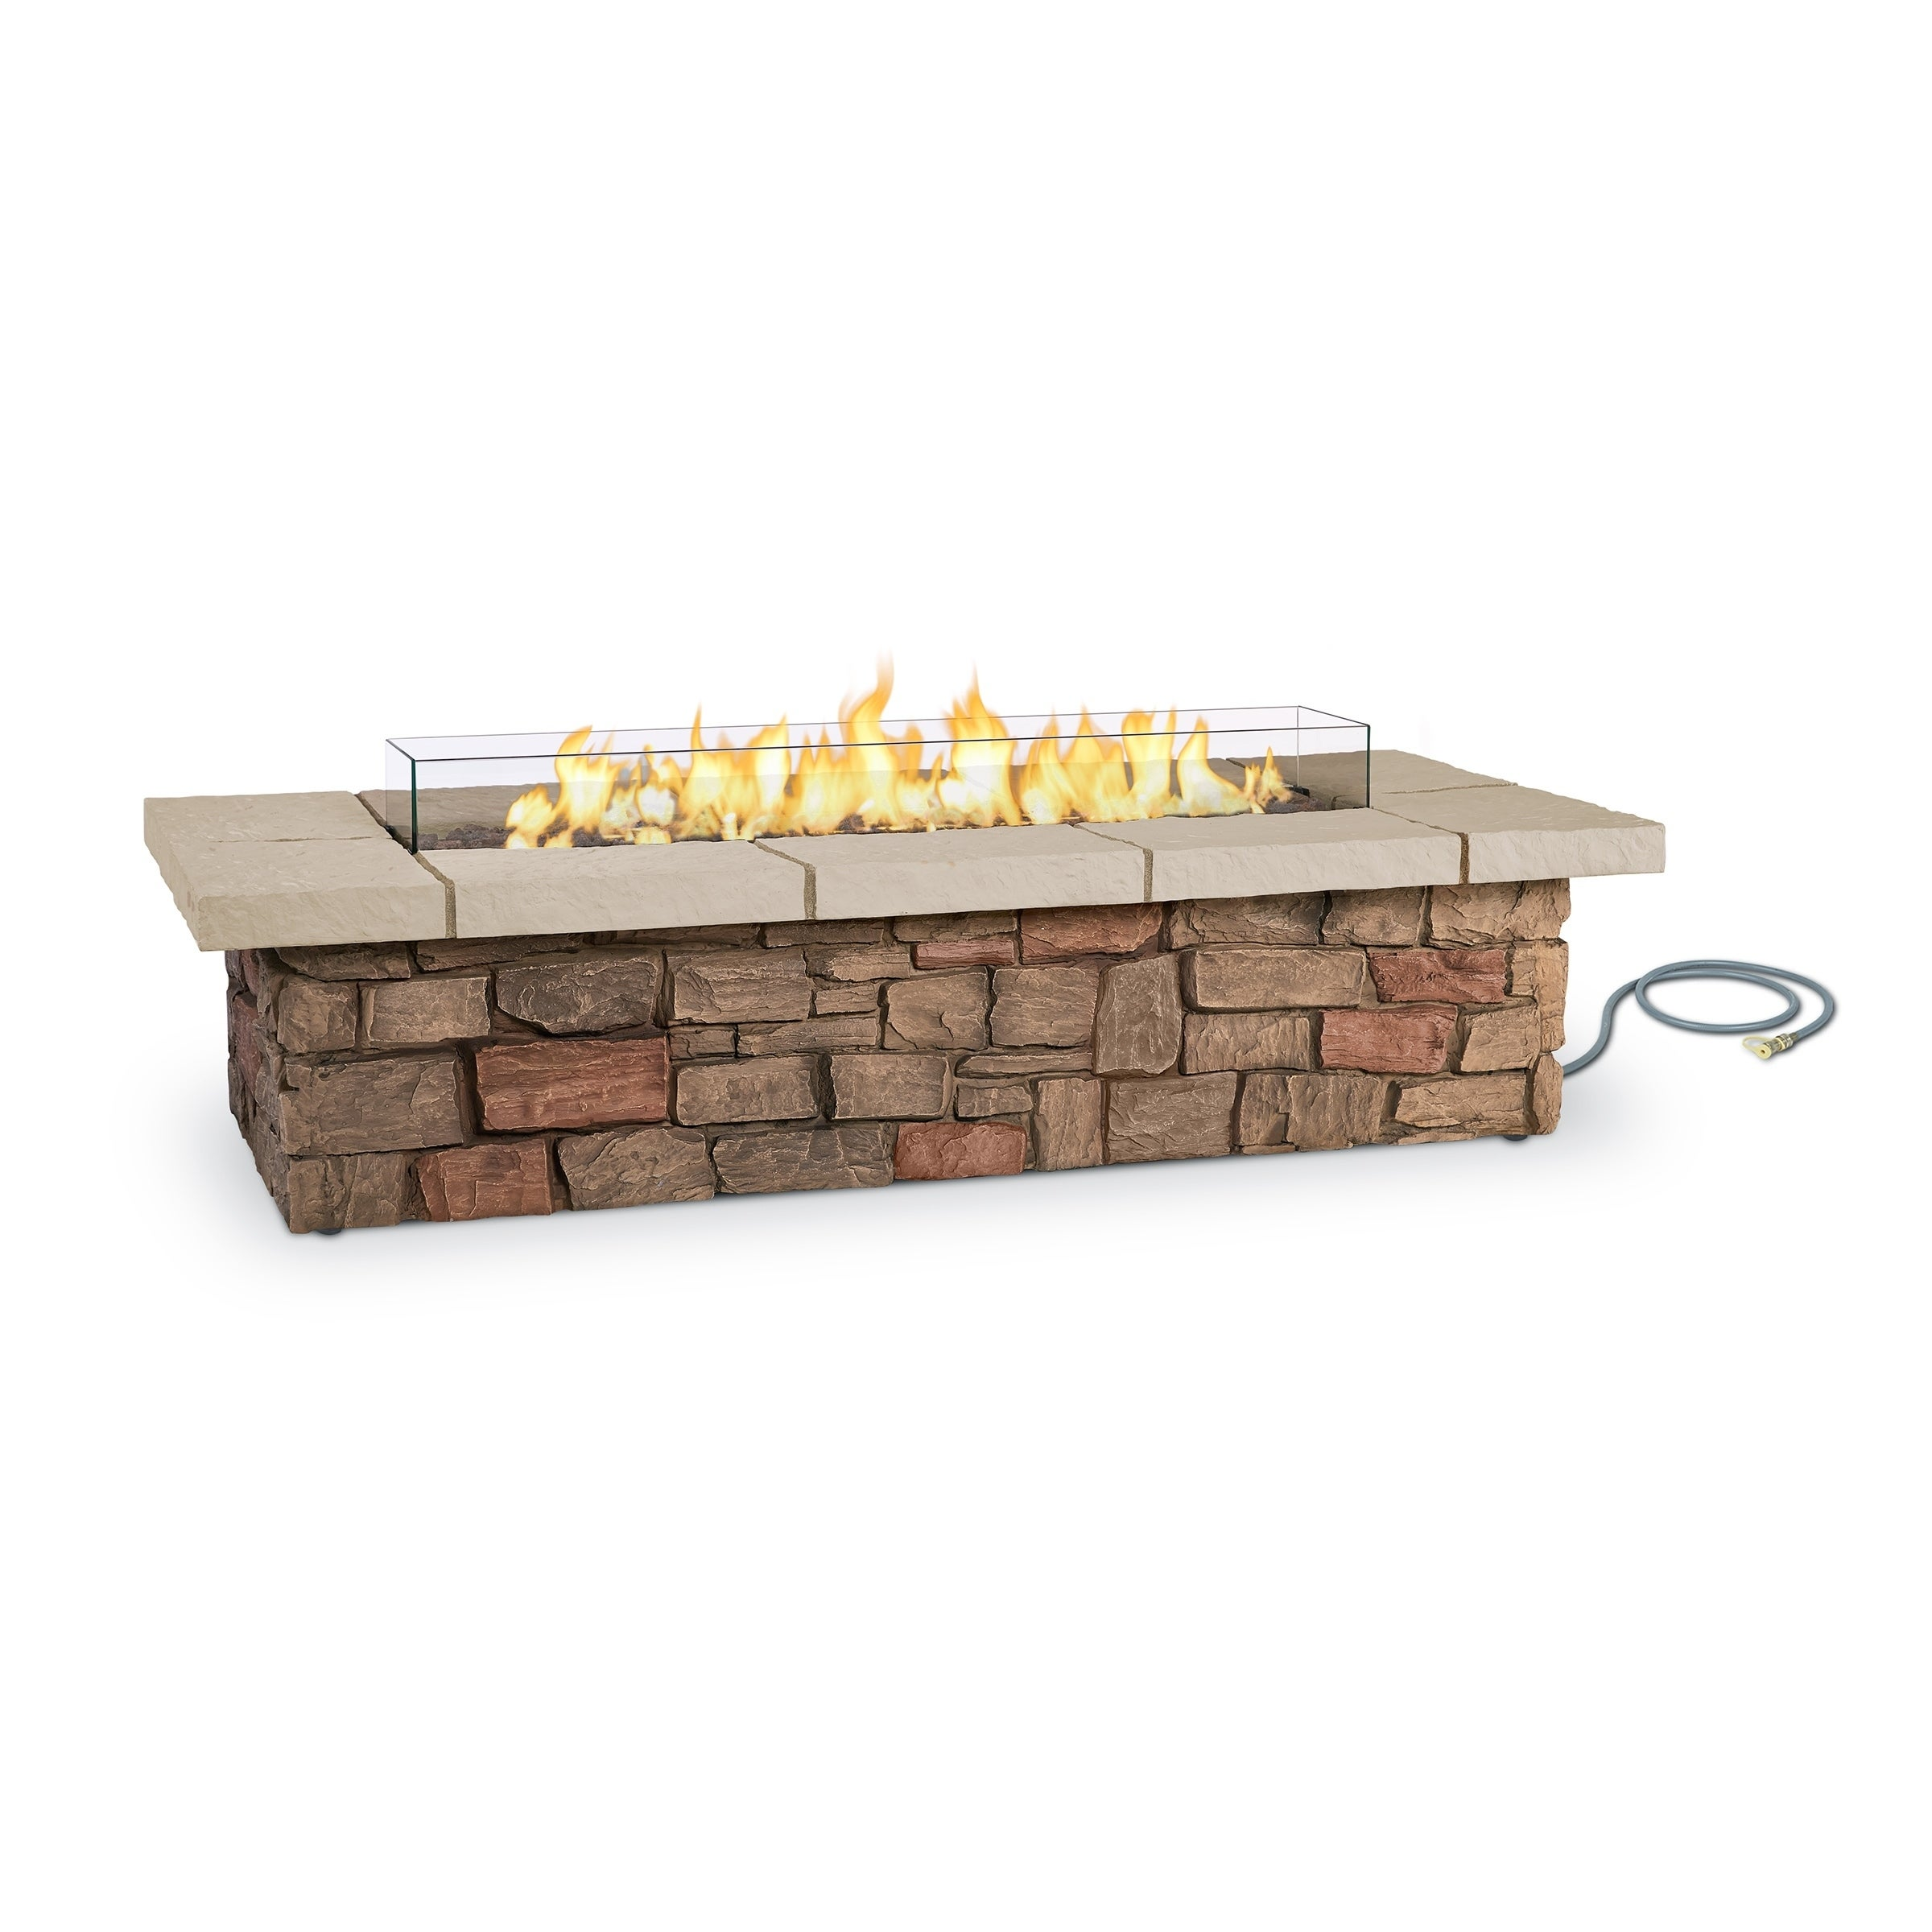 Shop sedona rectangle lp gas fire table w natural gas conversion kit by real flame free shipping today overstock com 18526723